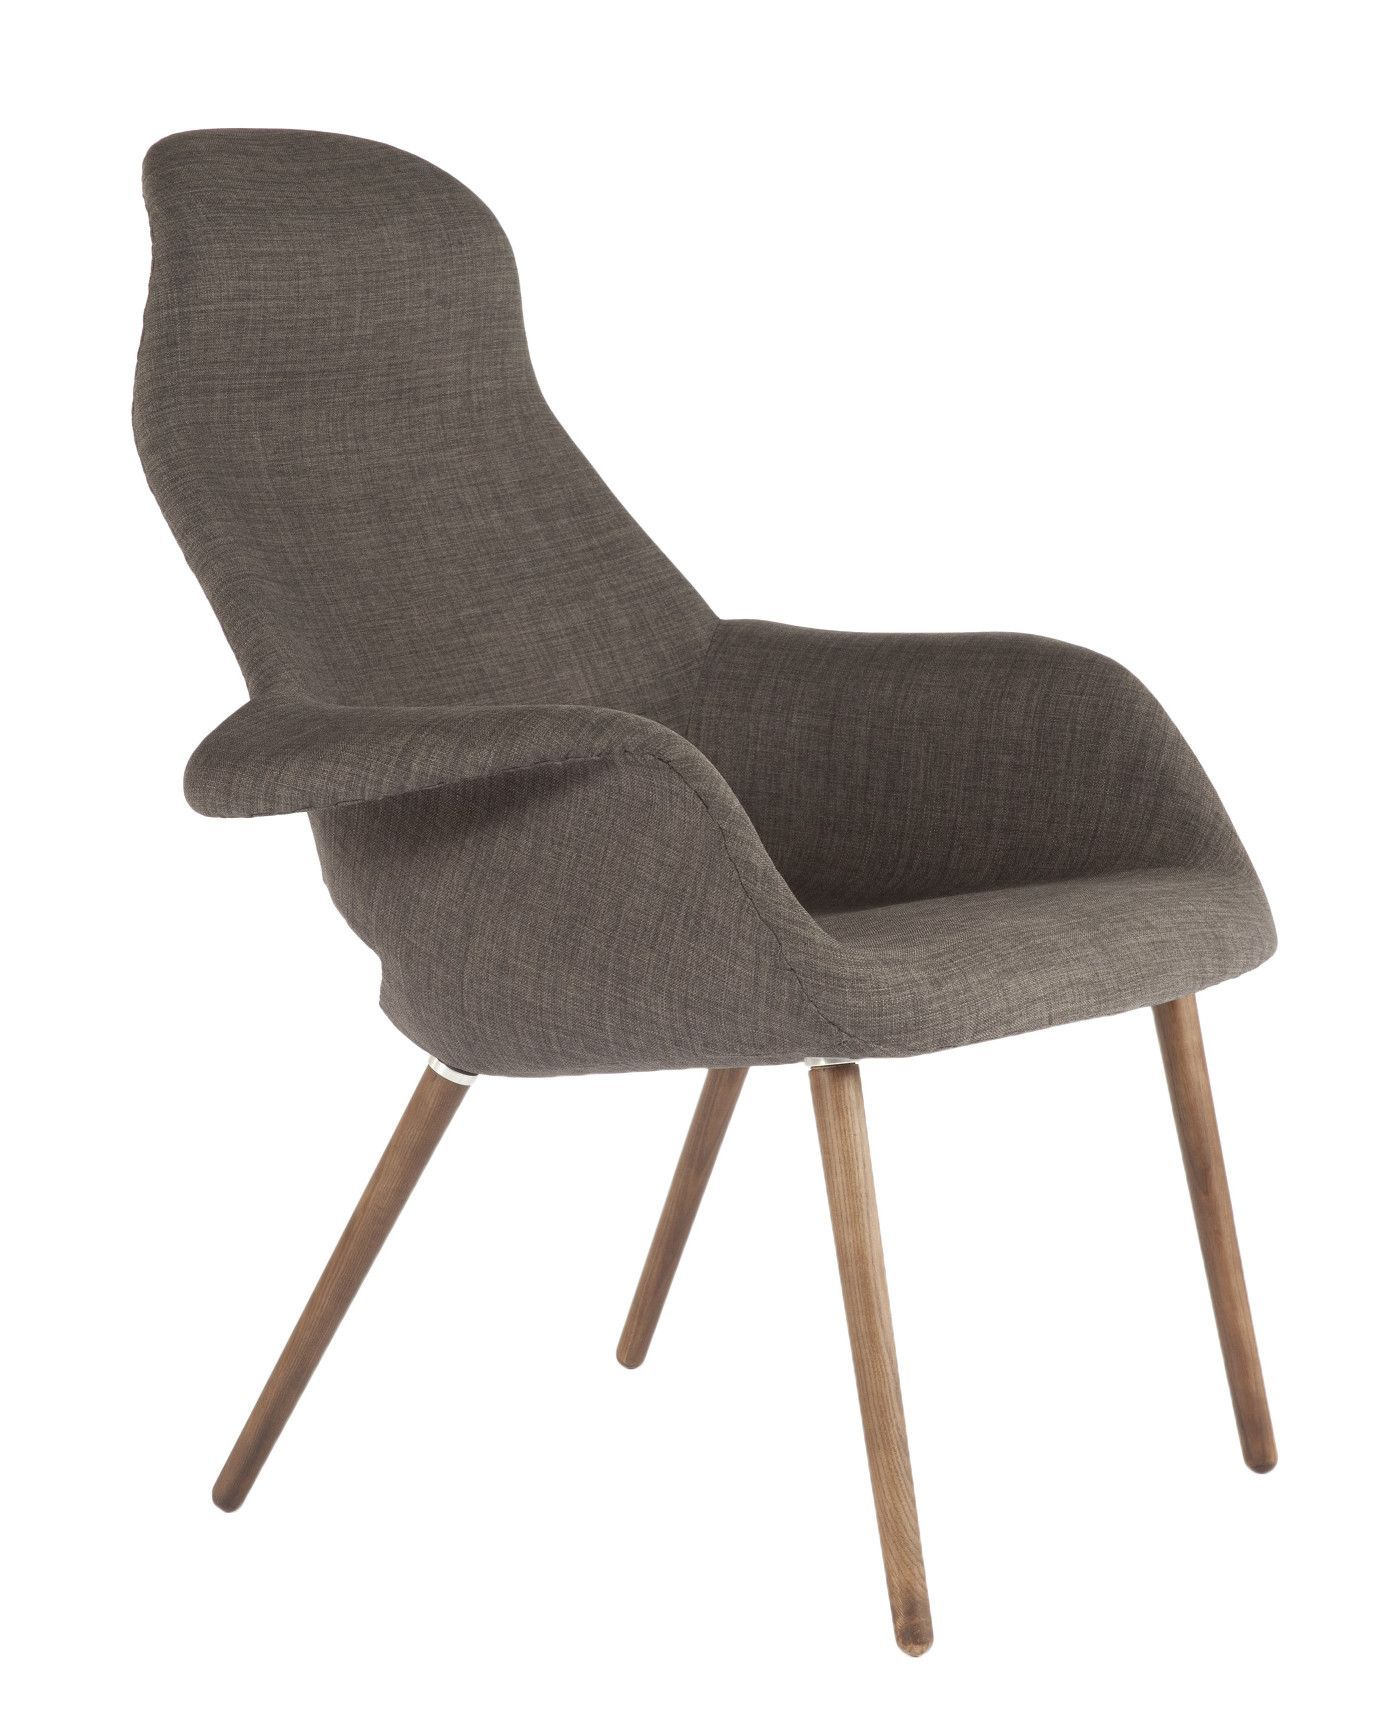 Designer Büromöbel Outlet Armchair Products Pinterest